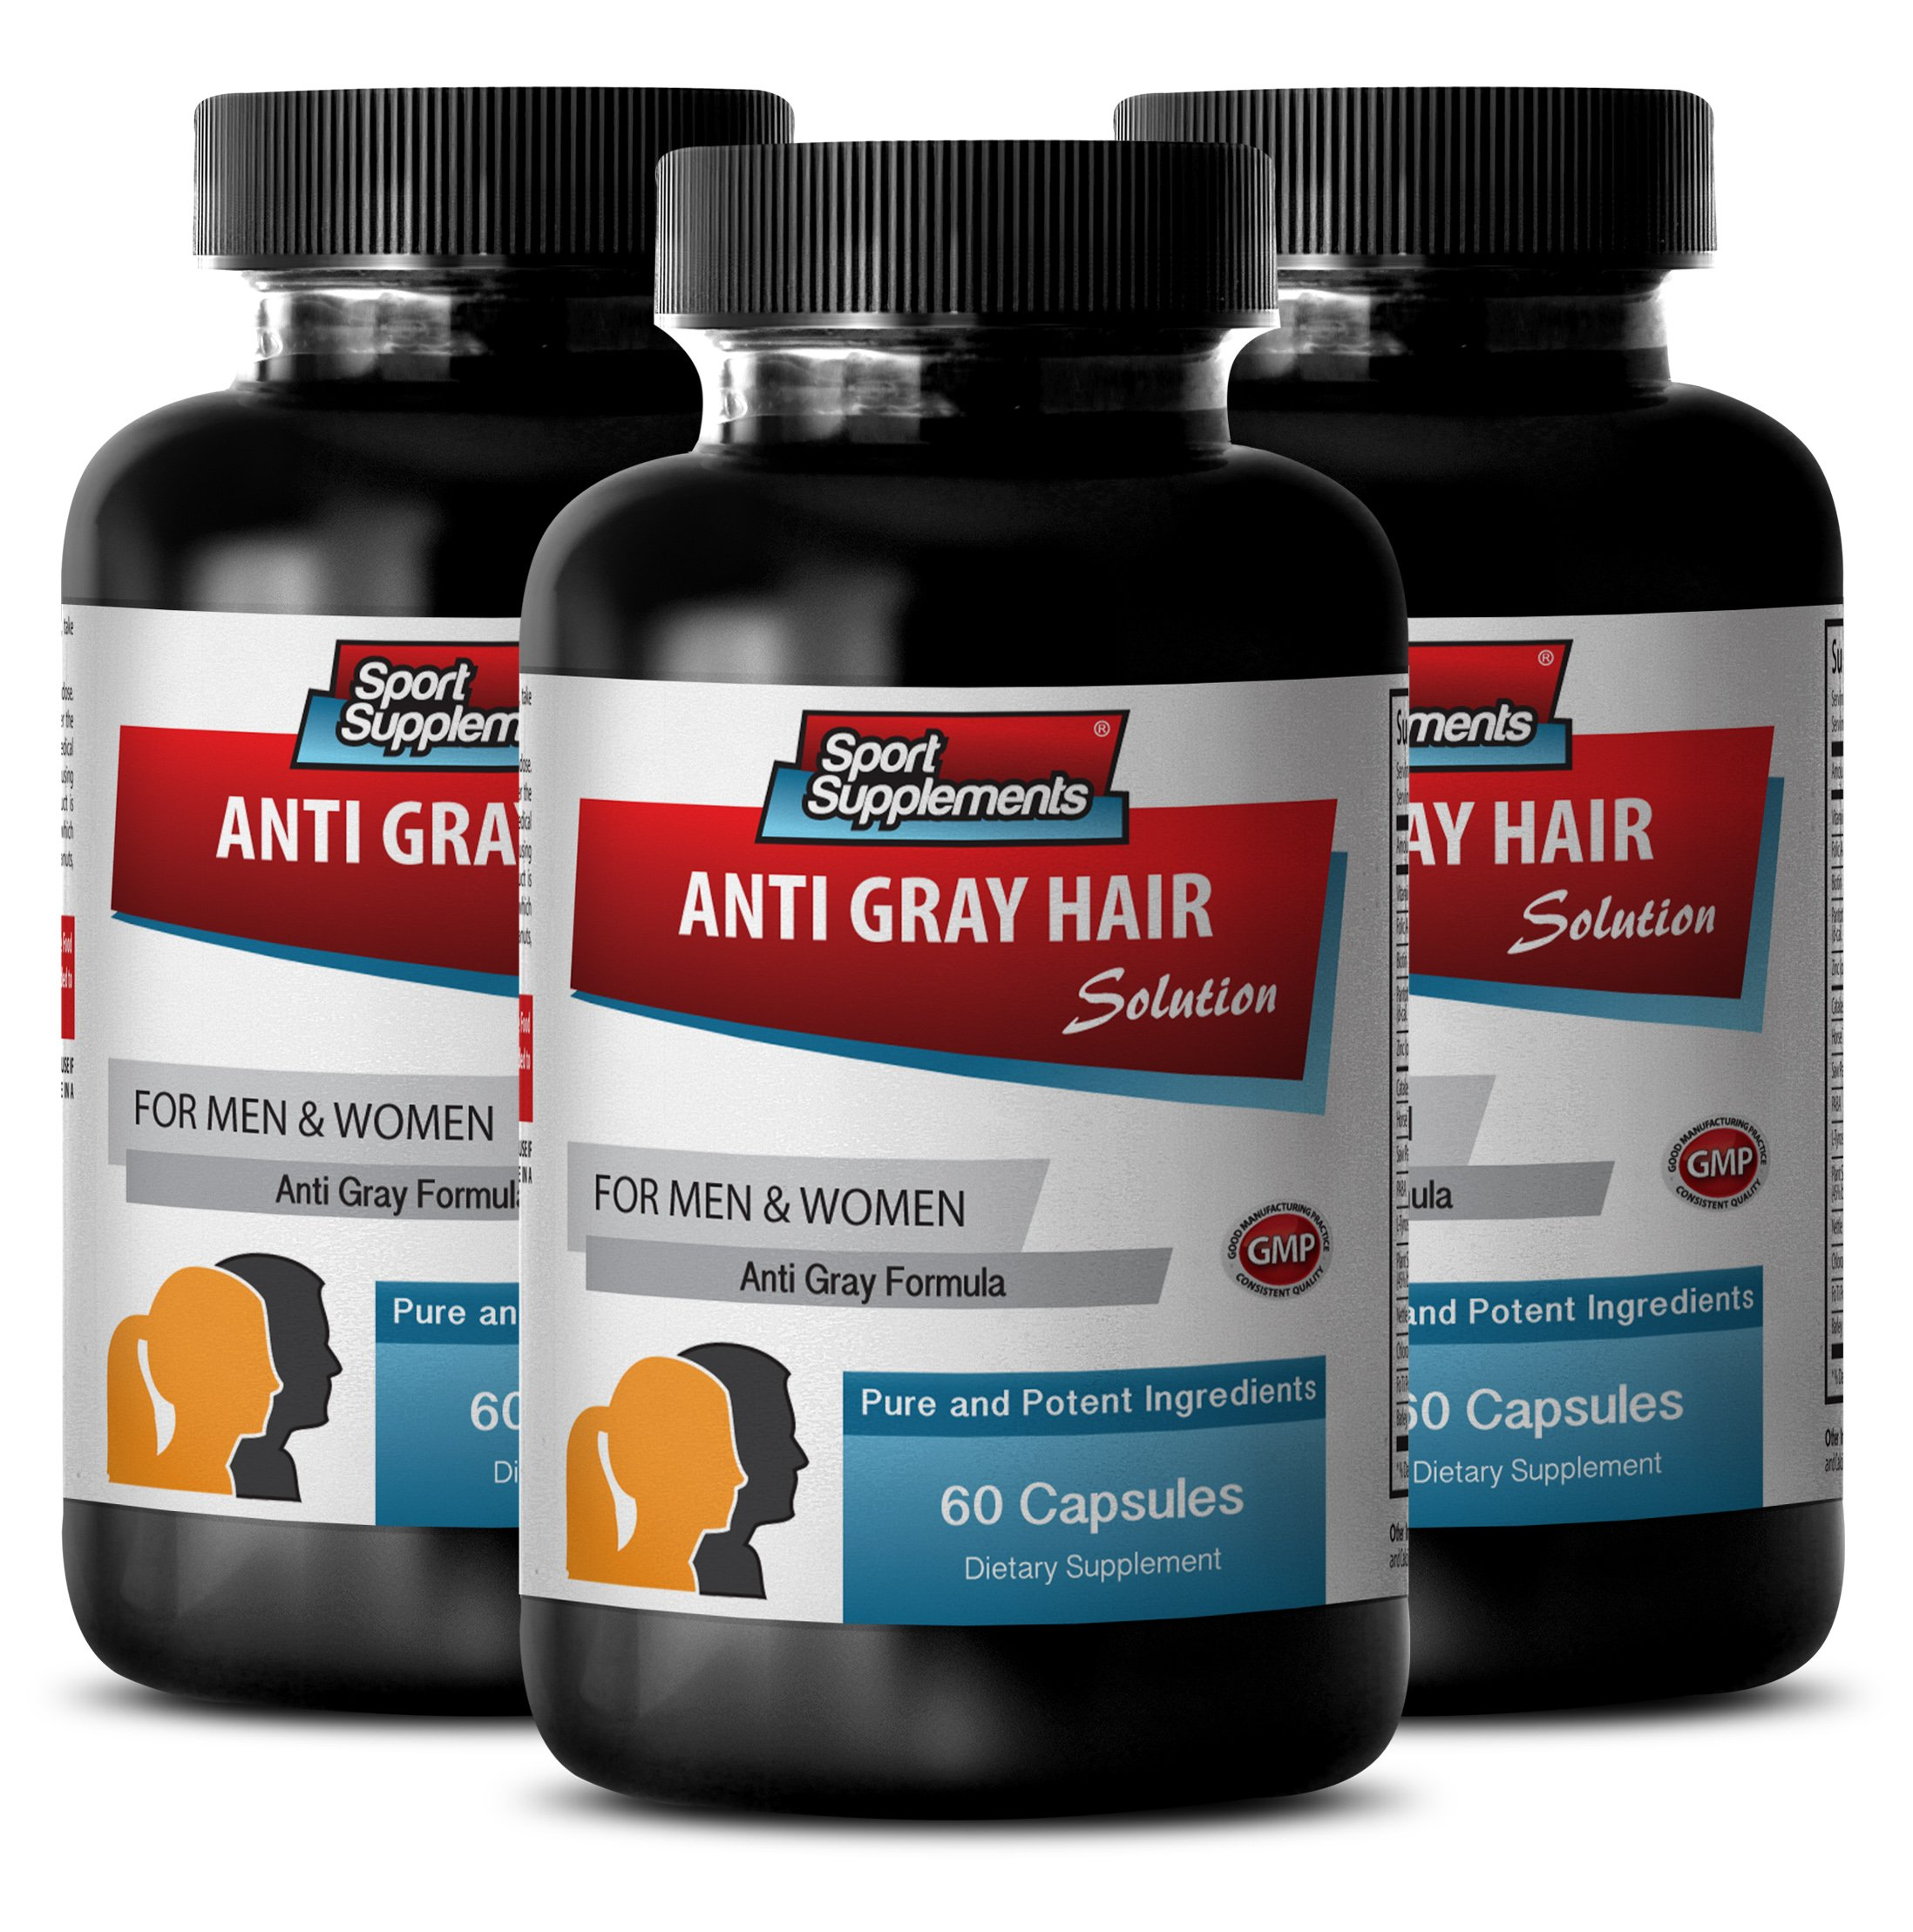 Folic acid powder - Anti Gray Hair - Pantothenic acid powder - Gray hair spray (3 Bottles - 180 Capsules)